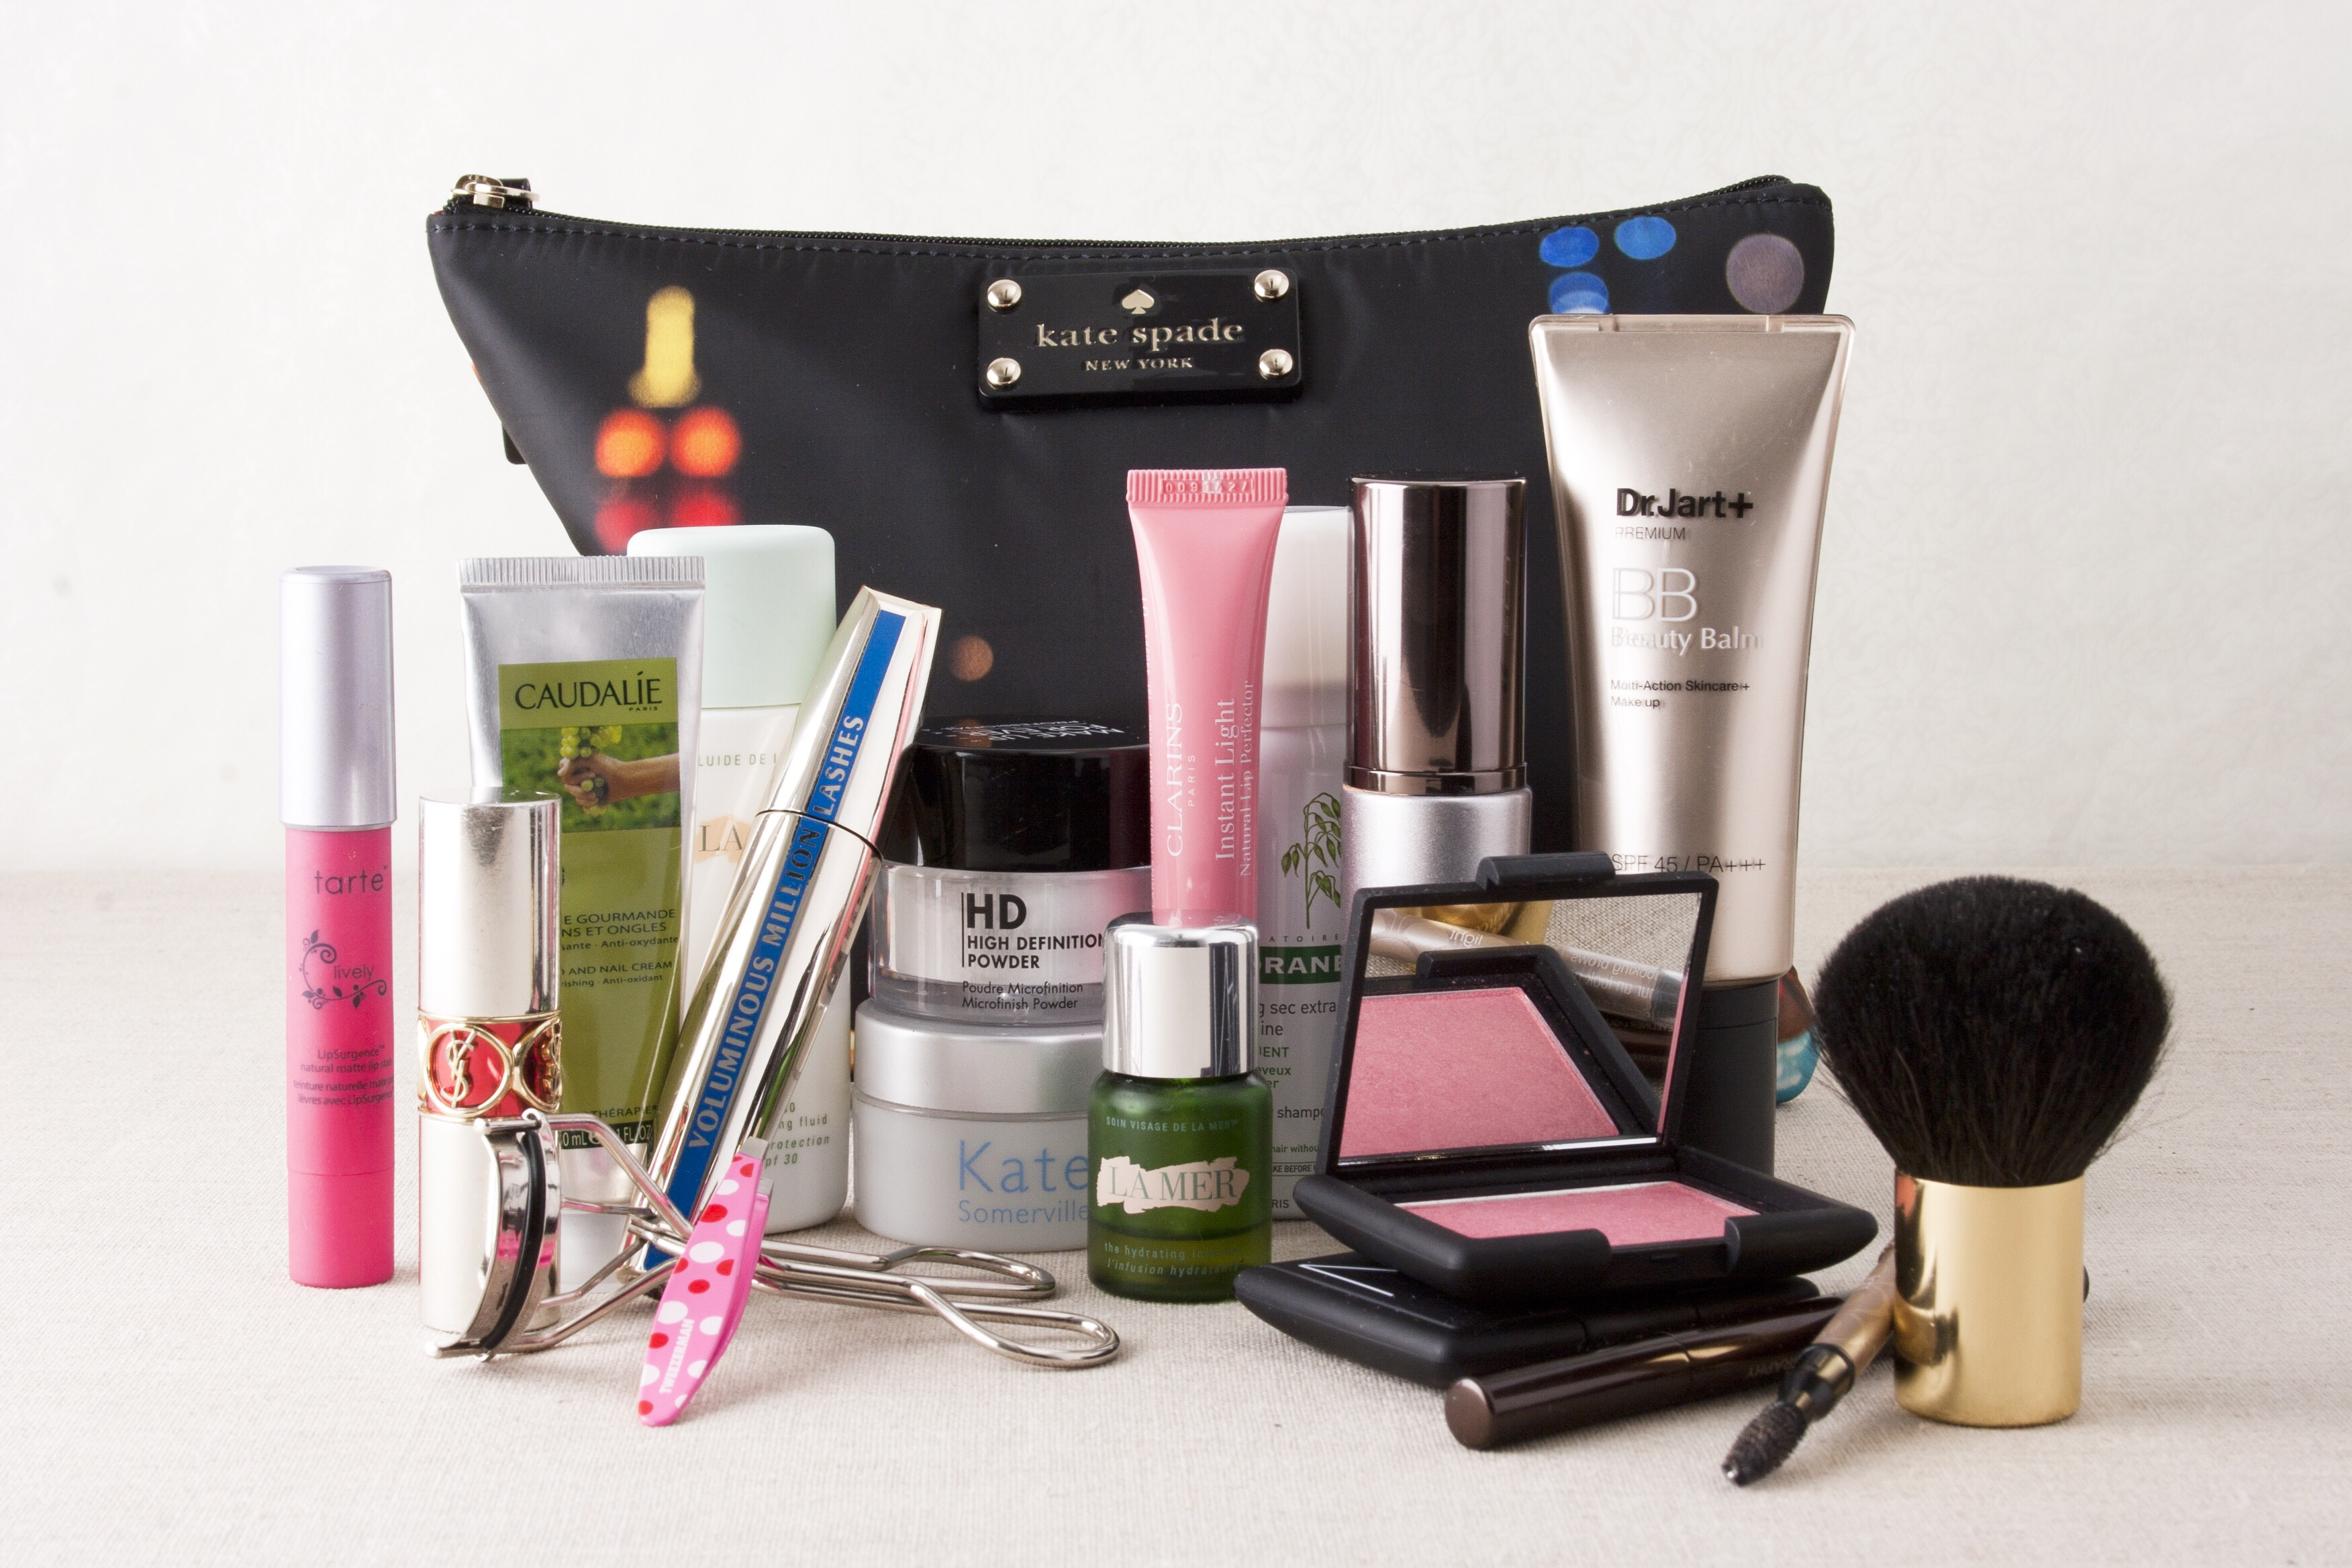 makeup bag and products